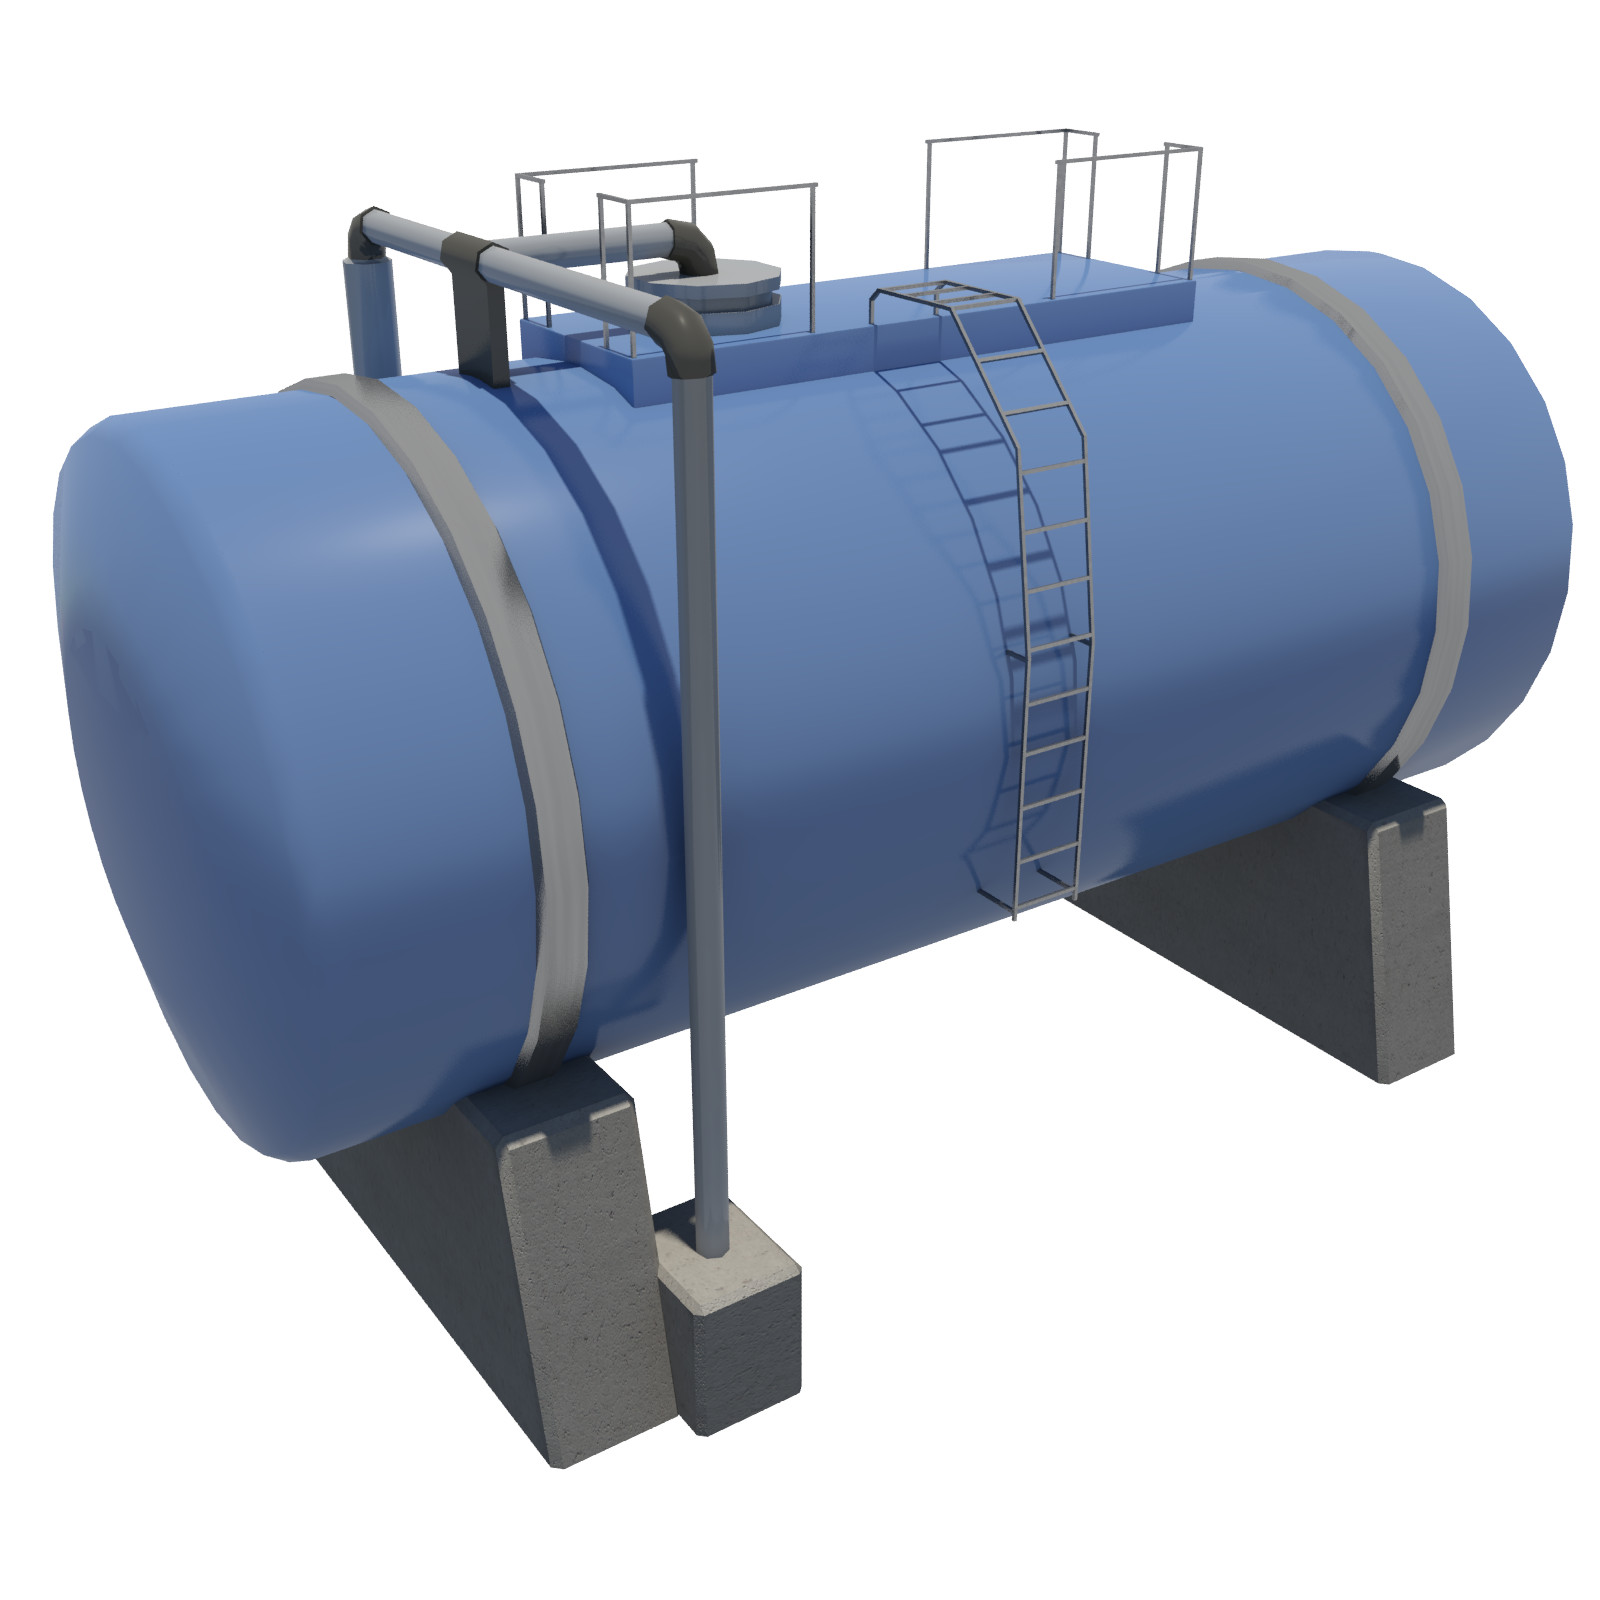 Industrial_tank_materialized_render01.png